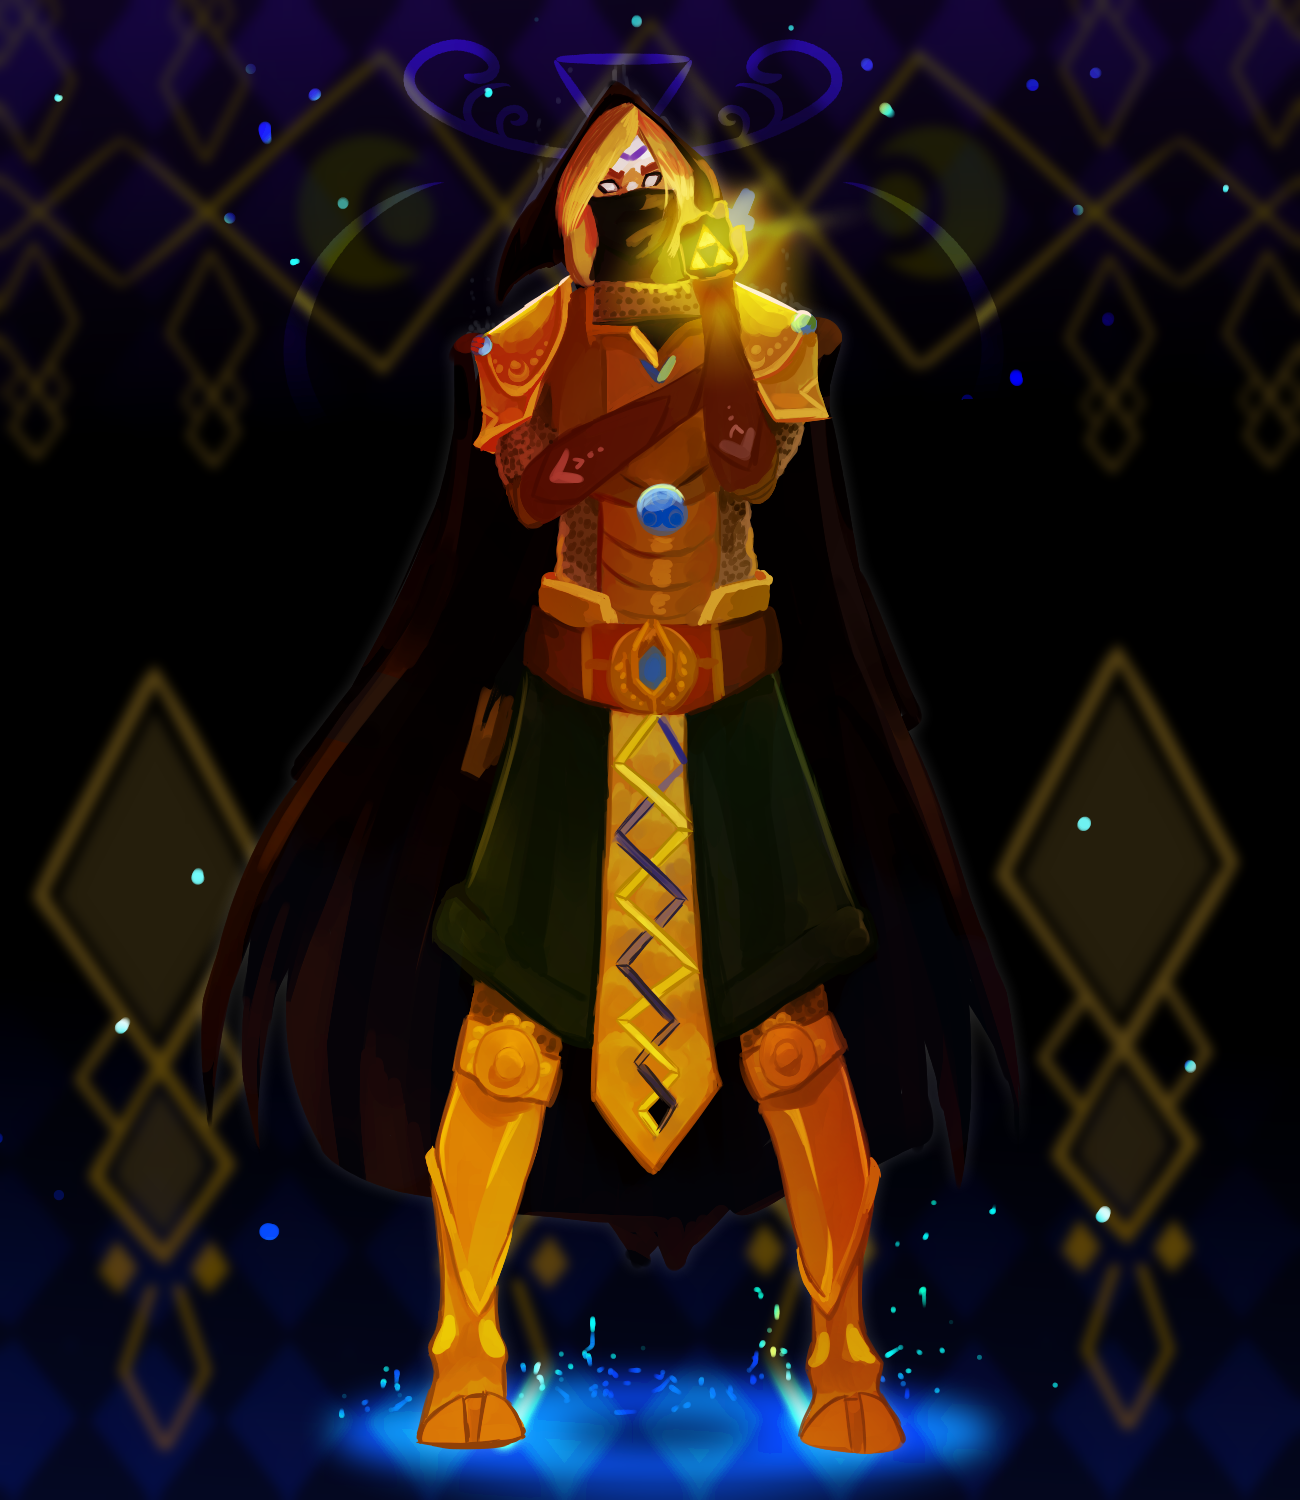 LVL99 COTM Entry - Guardian of the Triforce